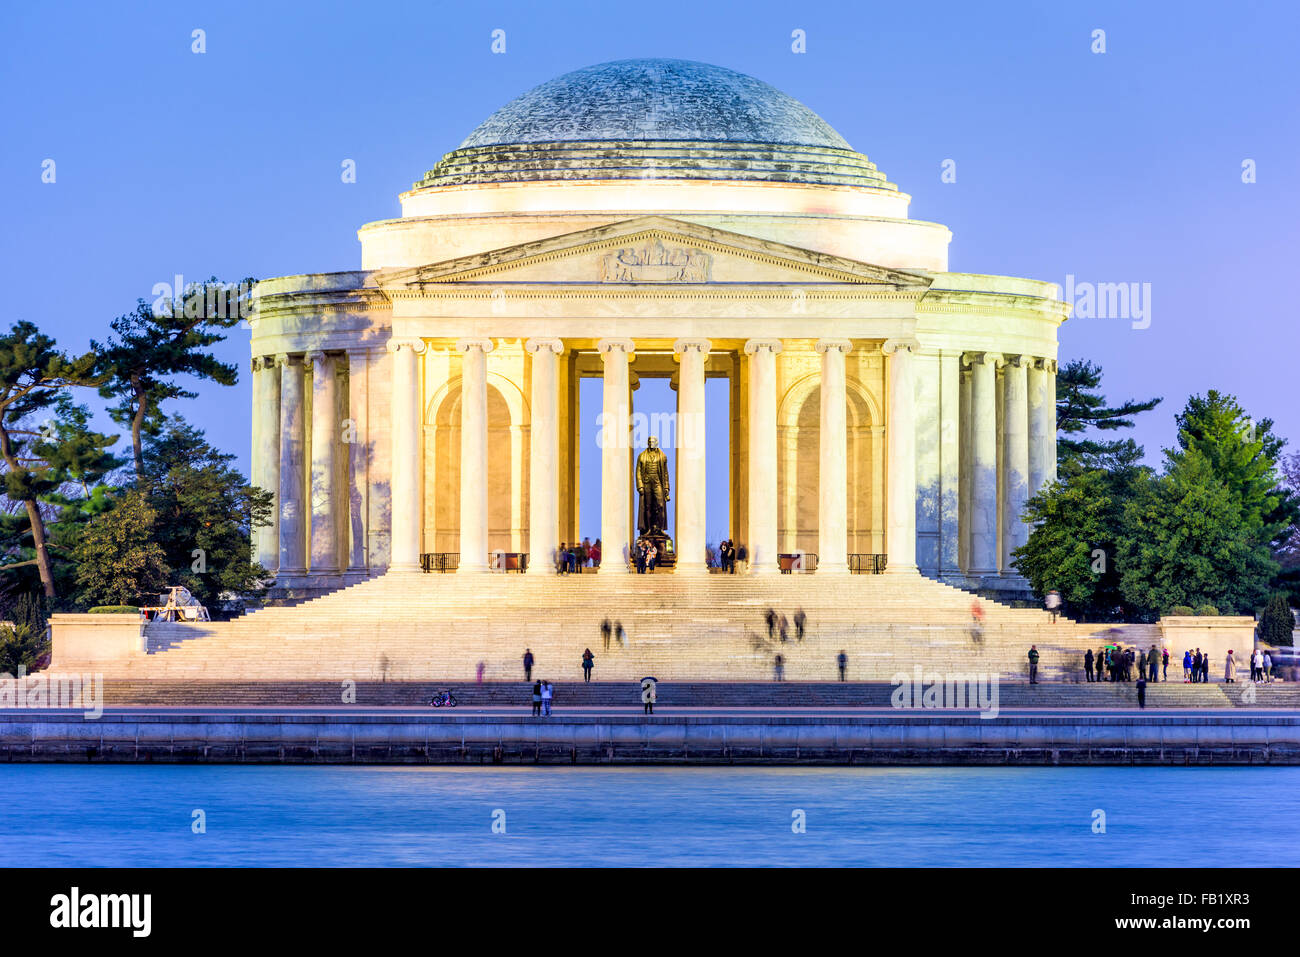 Washington, DC at the Tidal Basin and Jefferson Memorial. - Stock Image